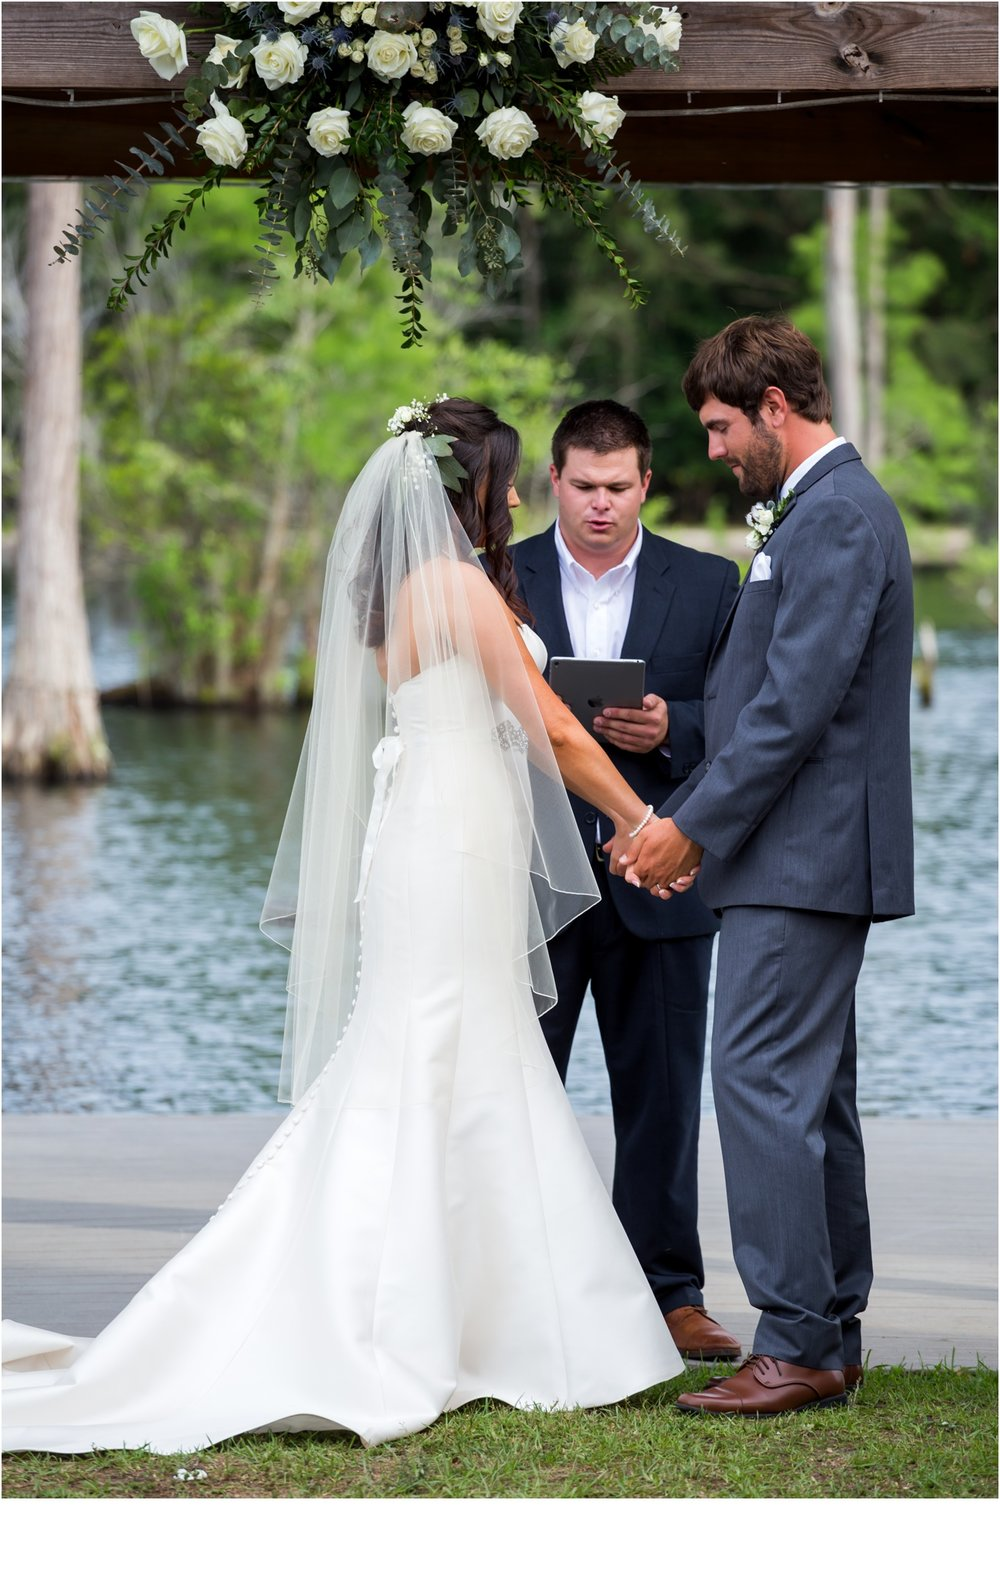 Rainey_Gregg_Photography_St._Simons_Island_Georgia_California_Wedding_Portrait_Photography_0965.jpg